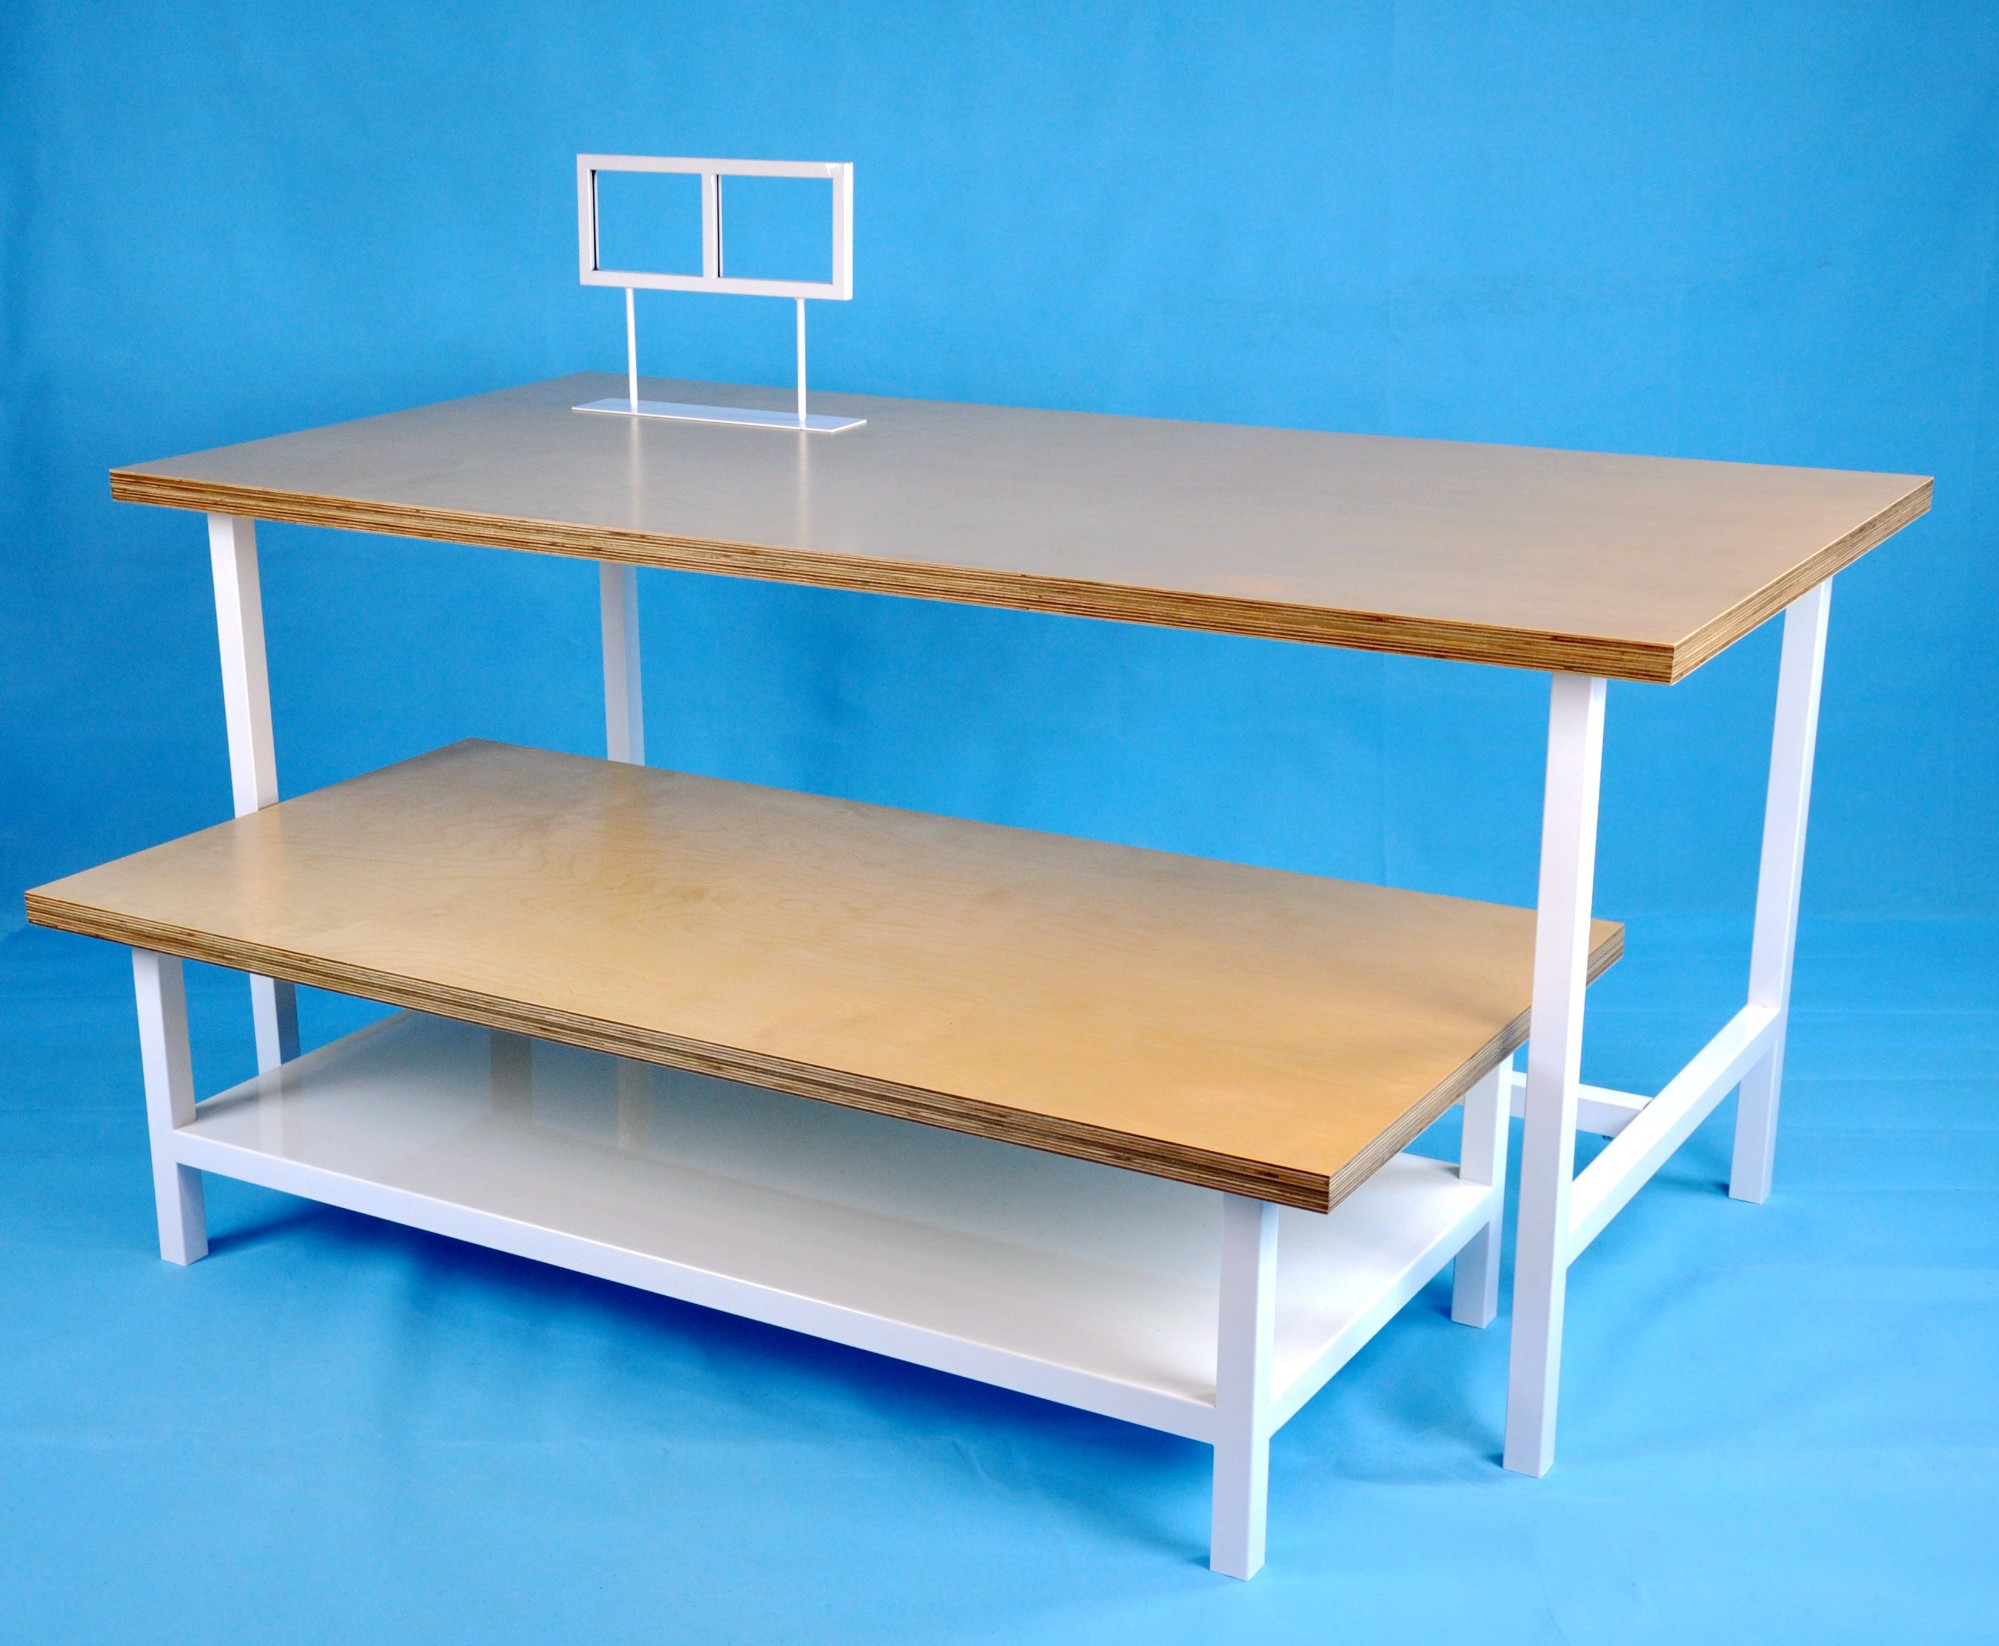 Plywood table Manufacturers, Plywood table Factory, Supply Plywood table